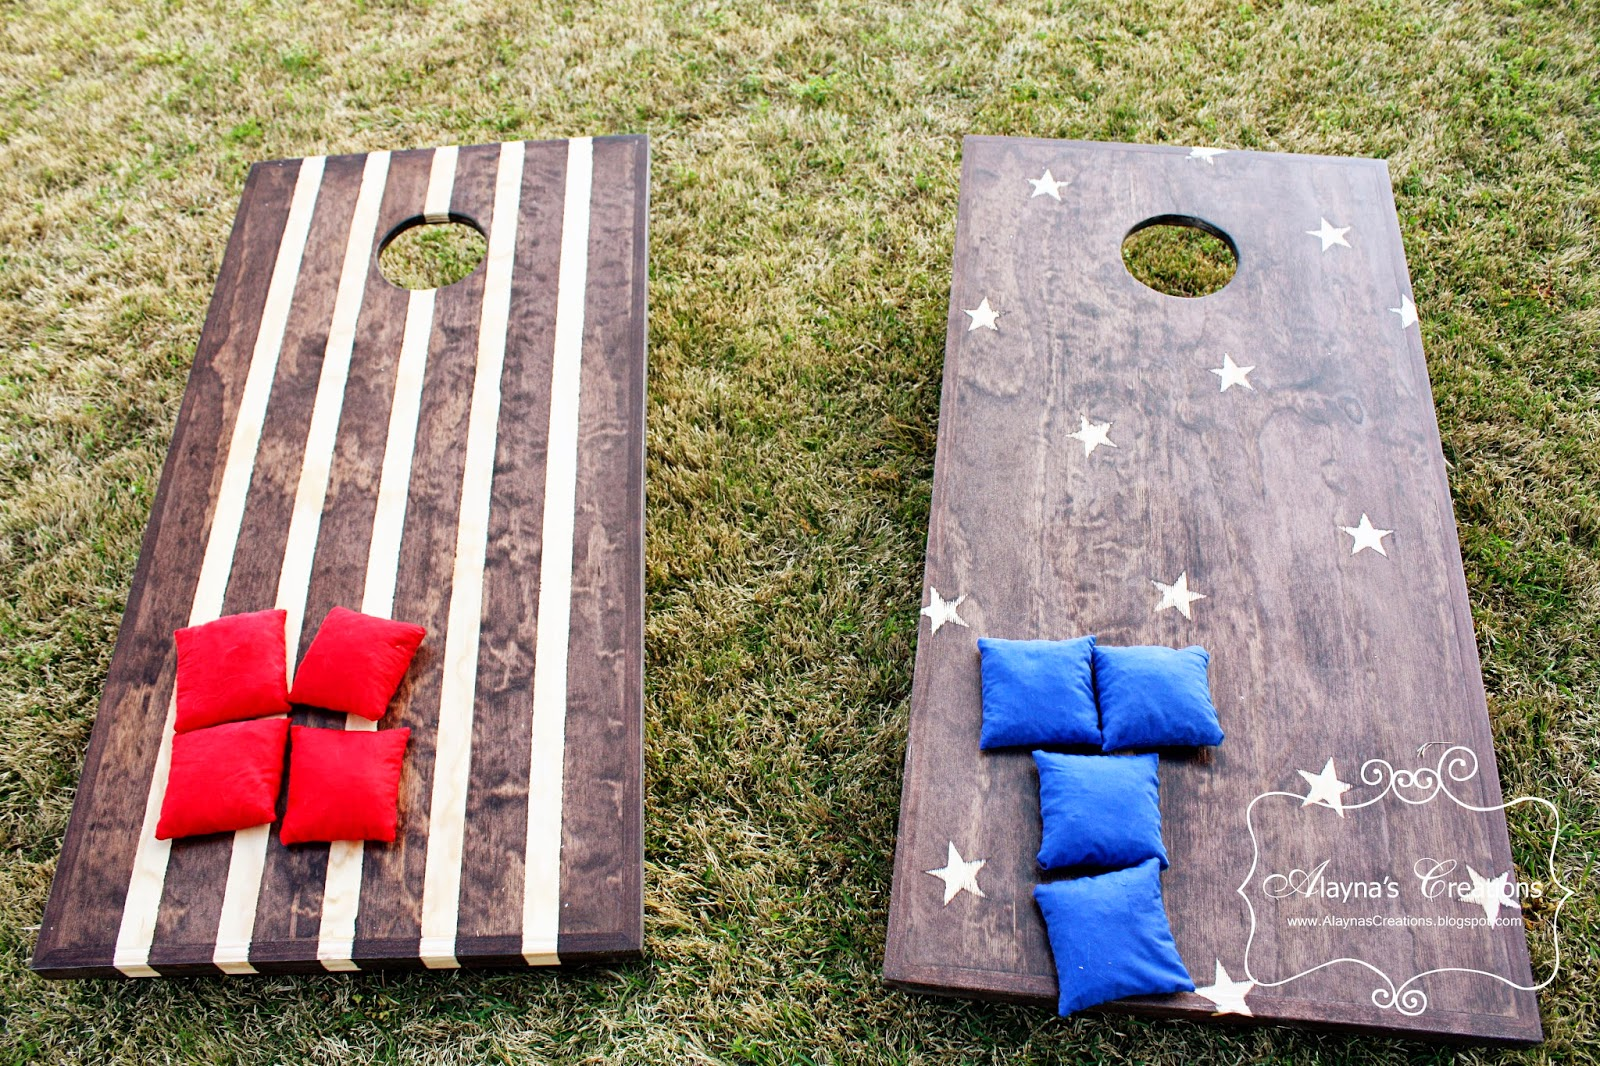 alaynaus creations diy corn hole with make your own cornhole set - Cornhole Design Ideas